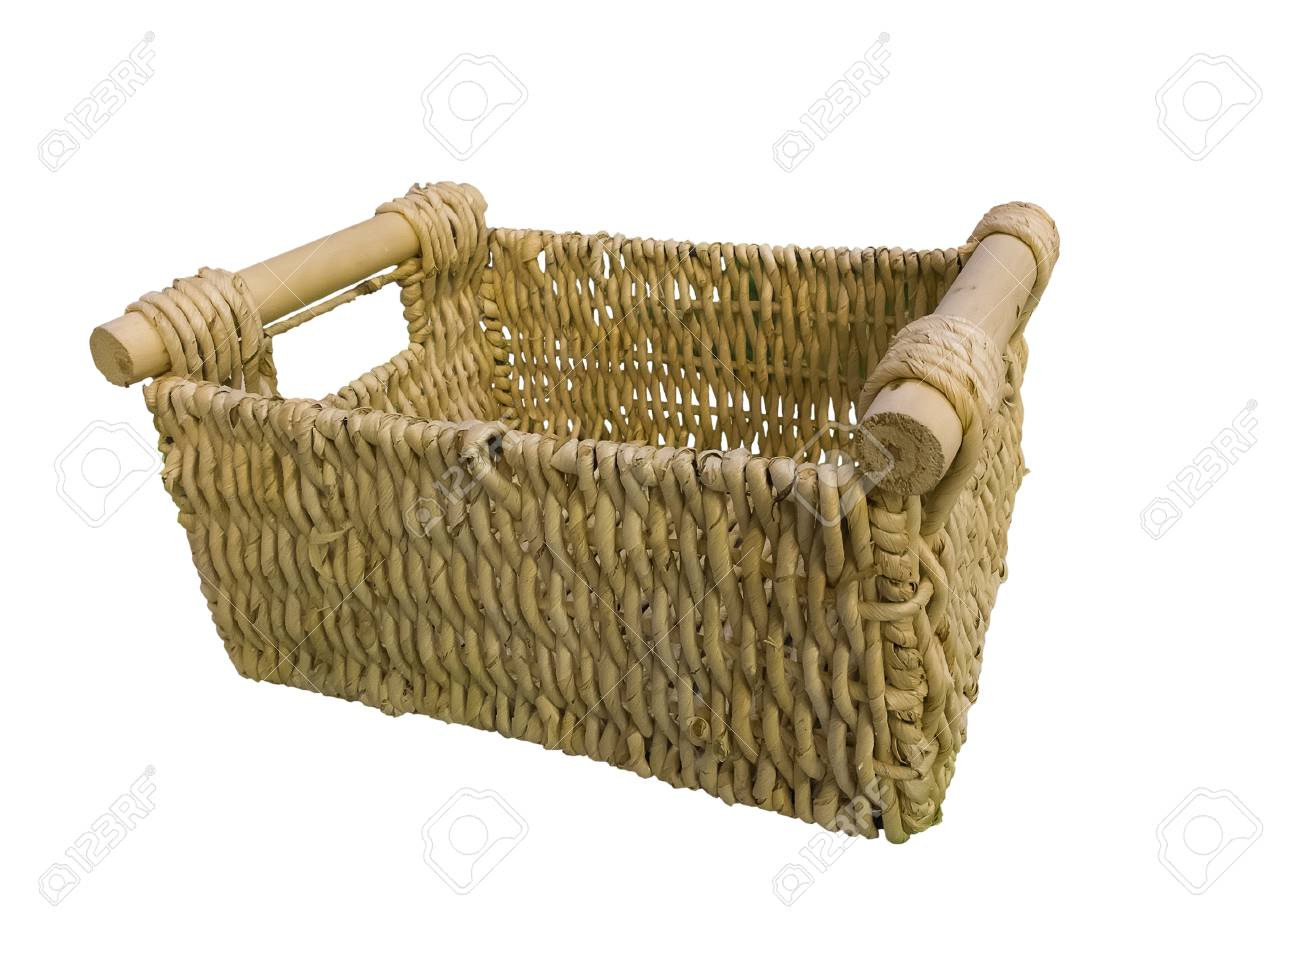 Empty Wicker Basket With Wooden Handles Isolated On White Background